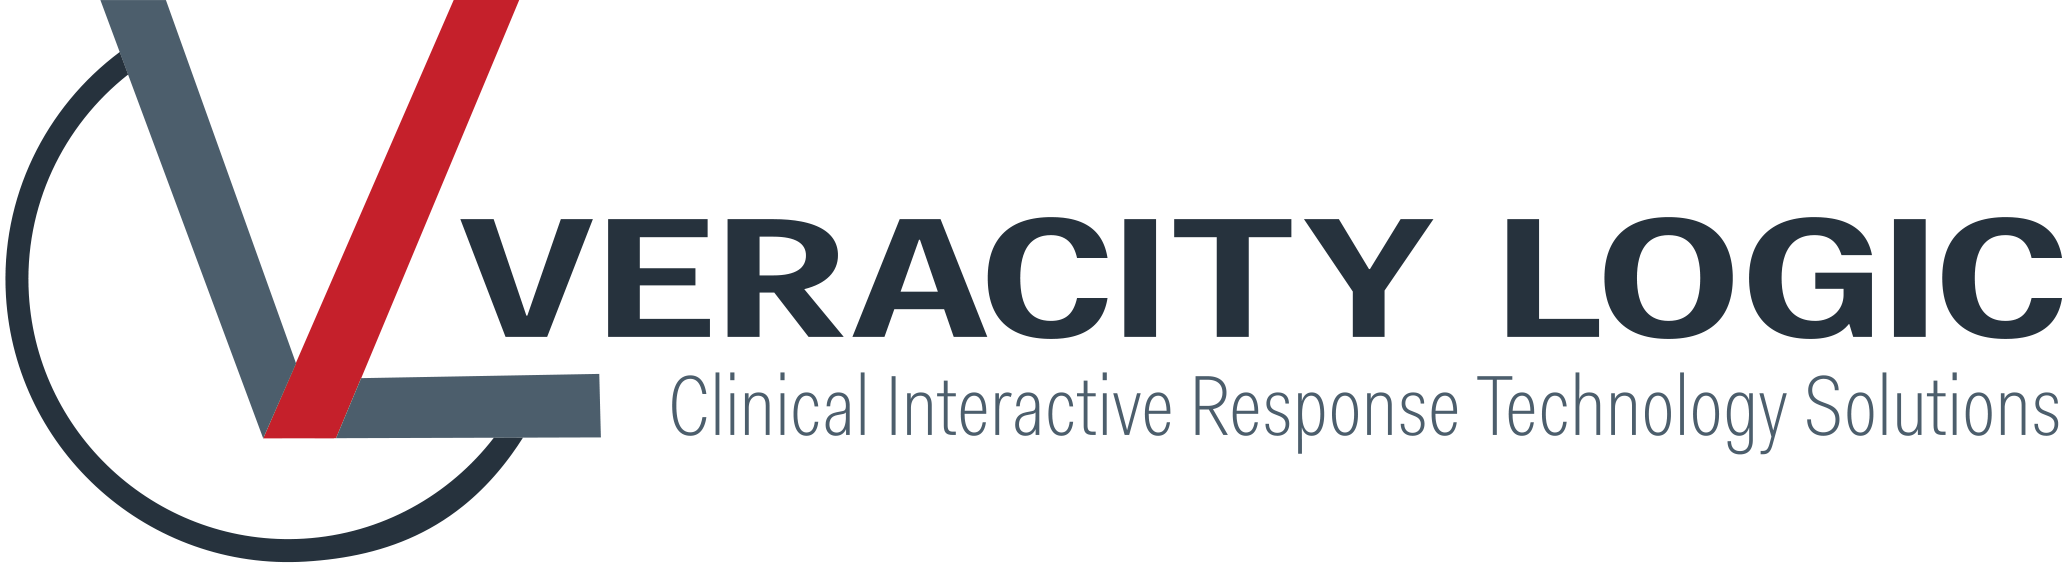 Veracity_Logic_Logo_with_TagLine_2016.png